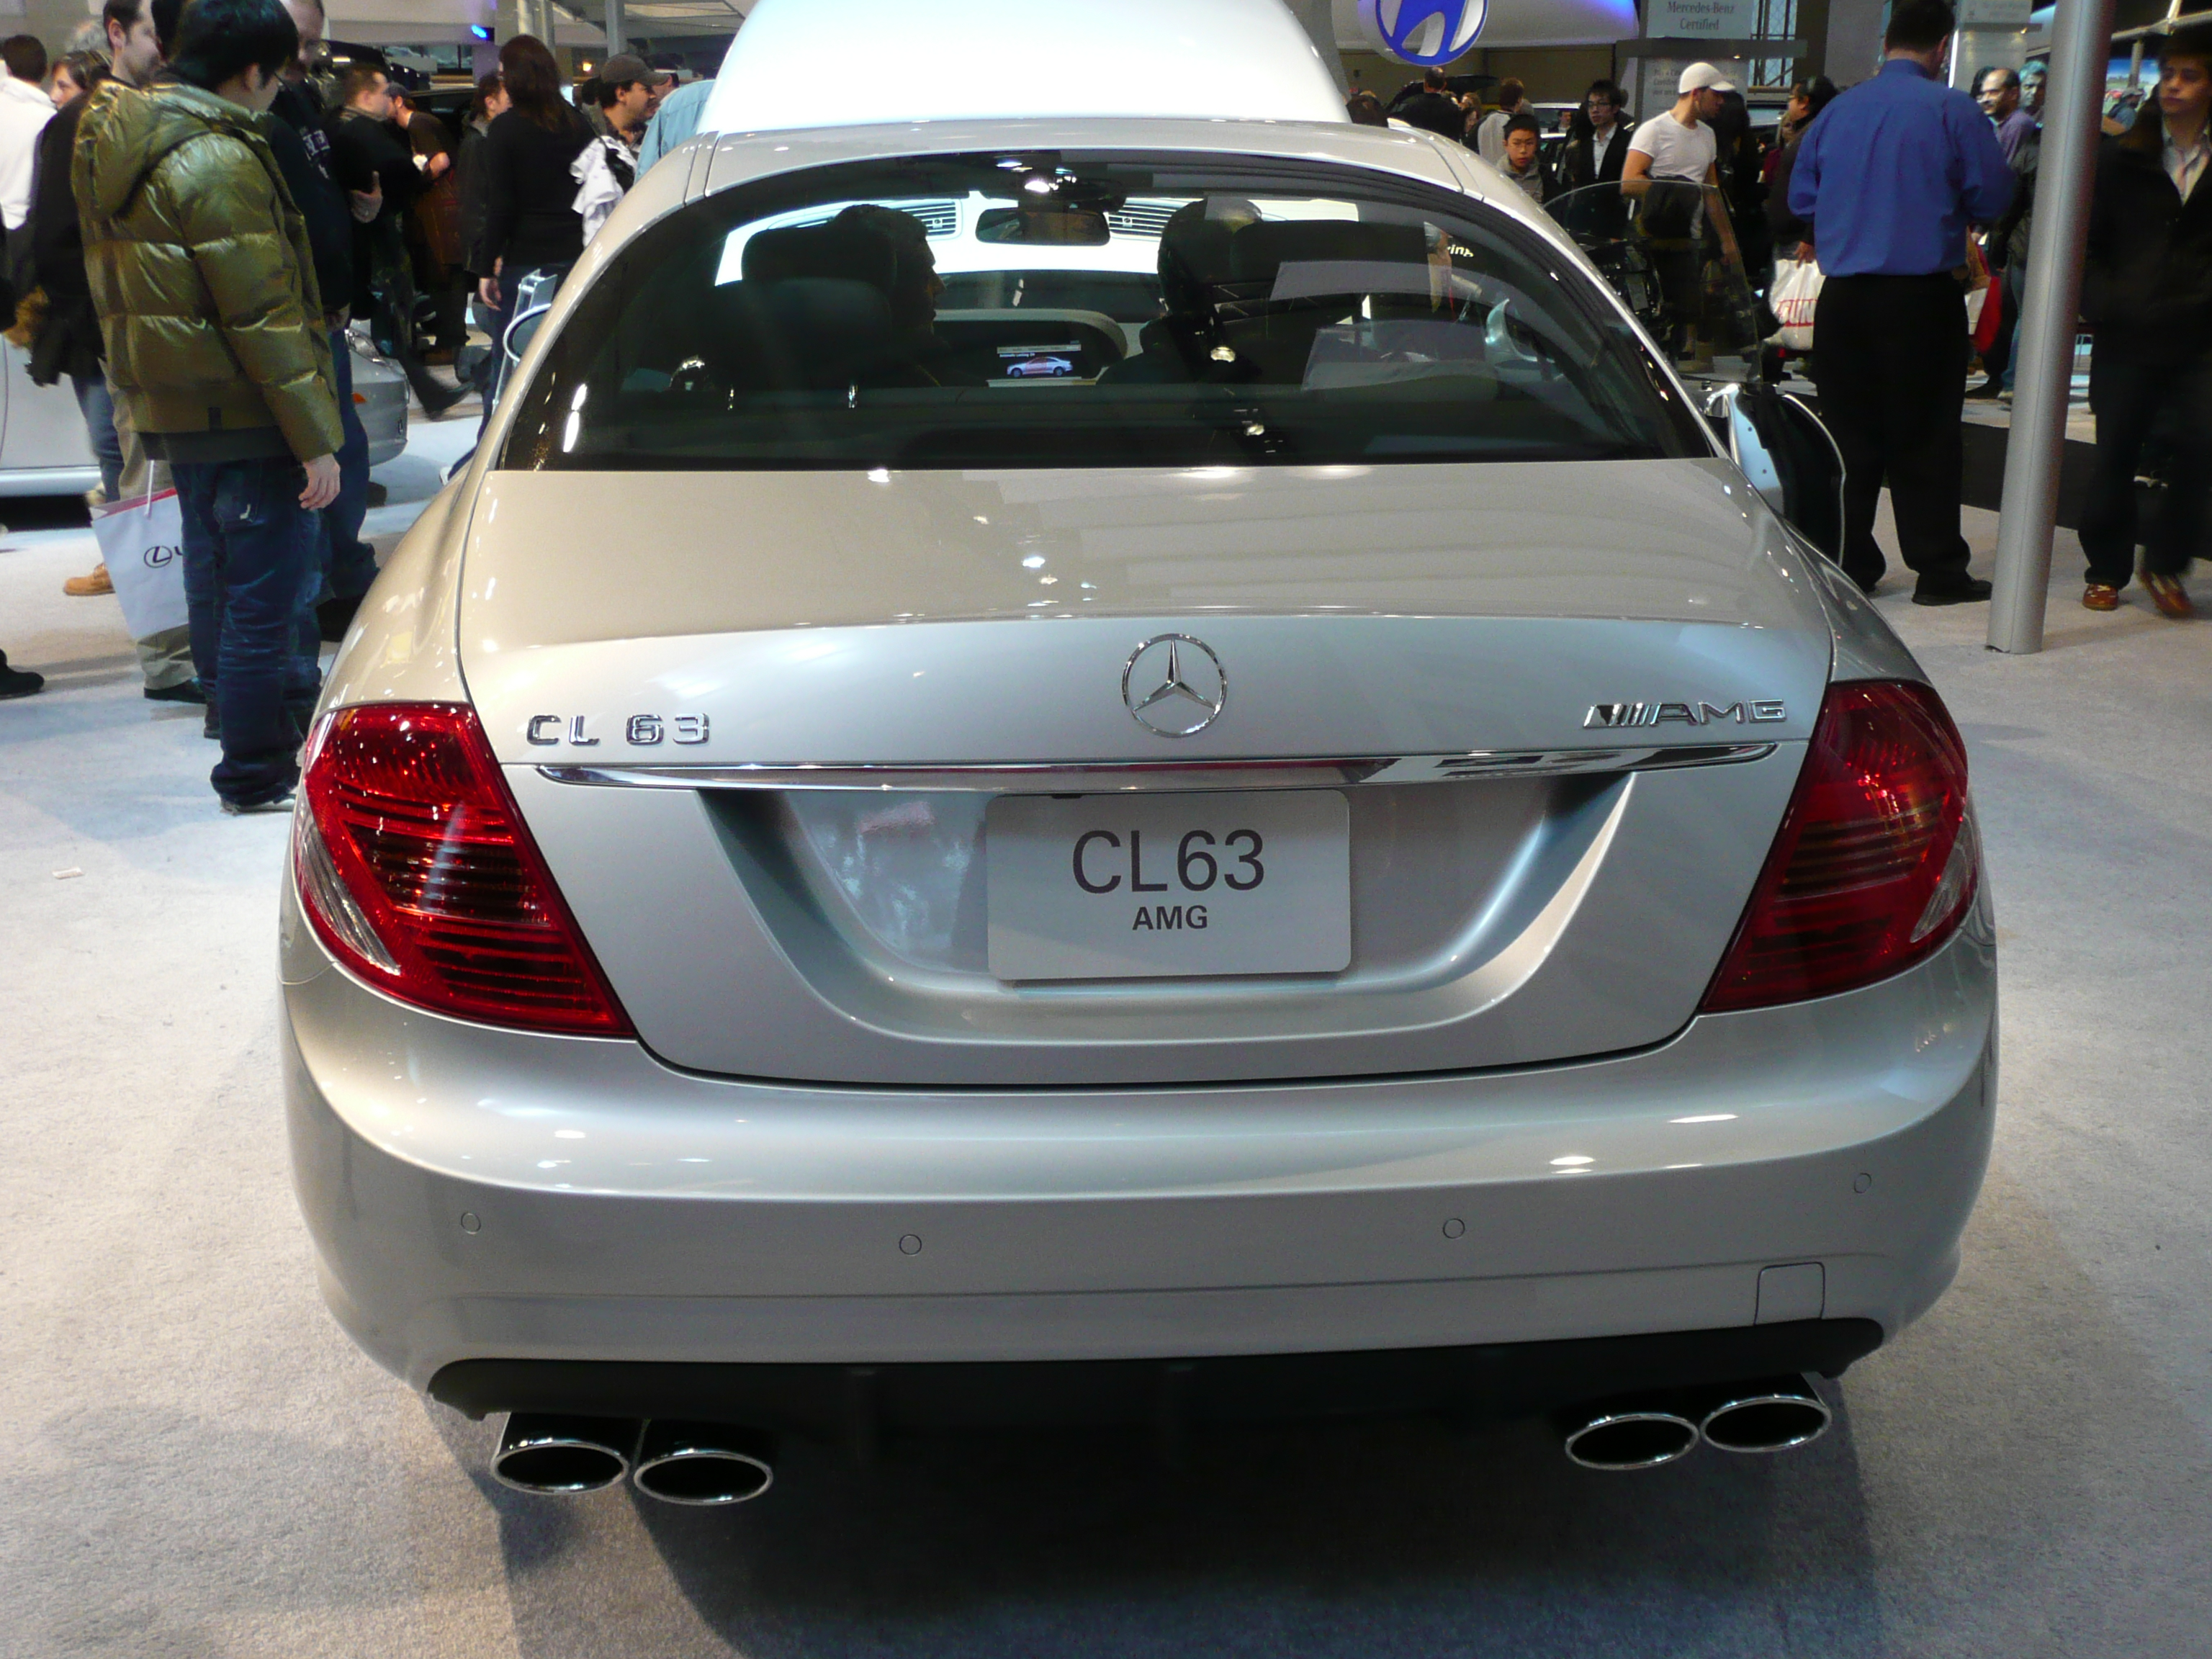 70 Years Of Mercedes E Class Pictures besides 2015 Mercedes Benz E Class Interior Screen Grabs 056 likewise 2006168 together with 2009 Carlsson CK63S Based On Mercedes Benz C 63 AMG Interior 1920x1440 besides T3 12 8. on mercedes e350 interior